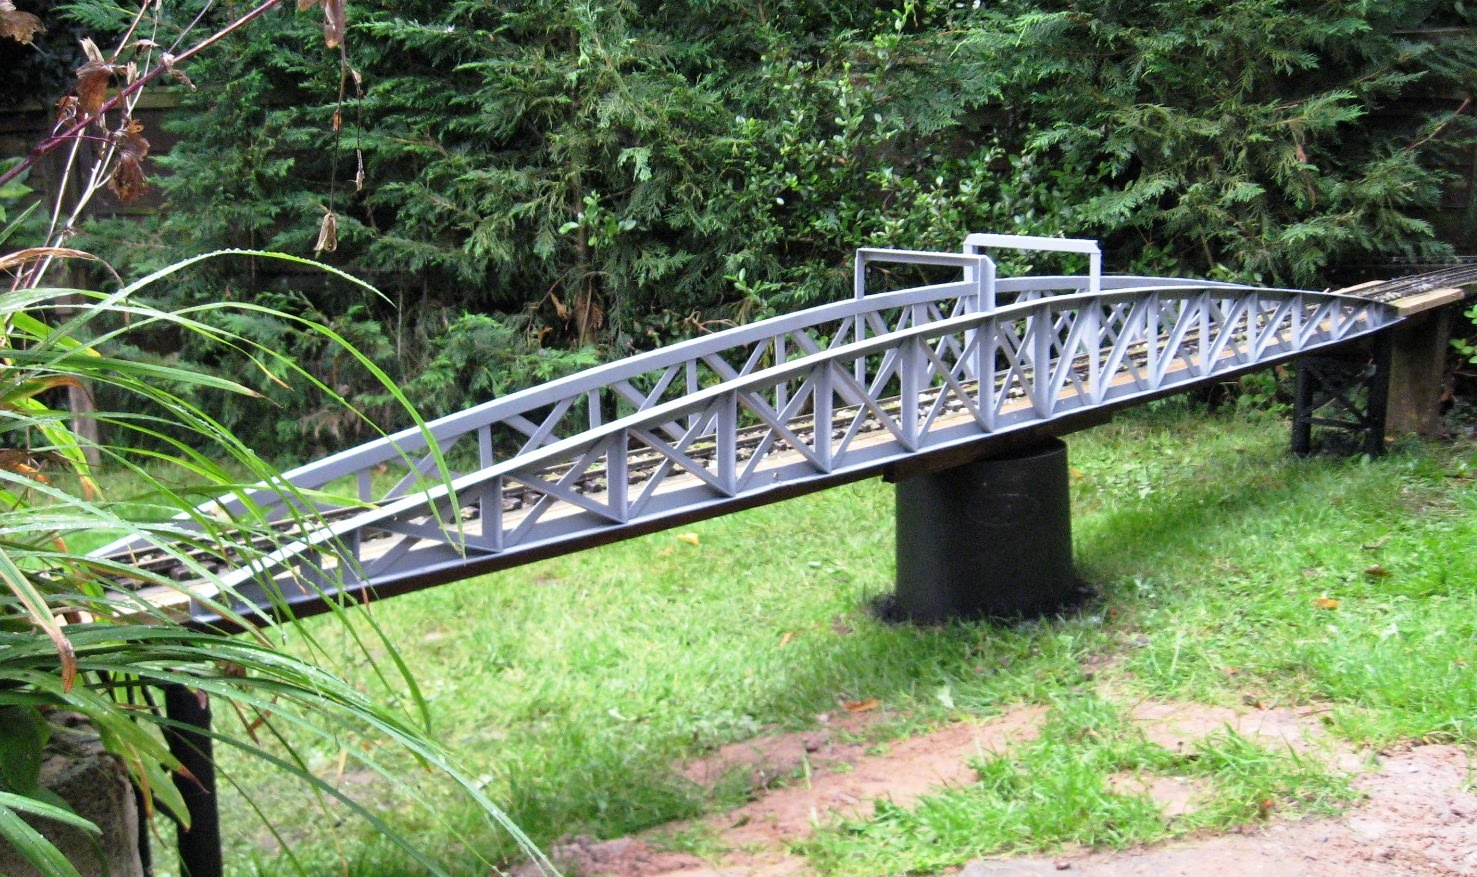 Peckforton Light Railway: How I improved the rail joints on the